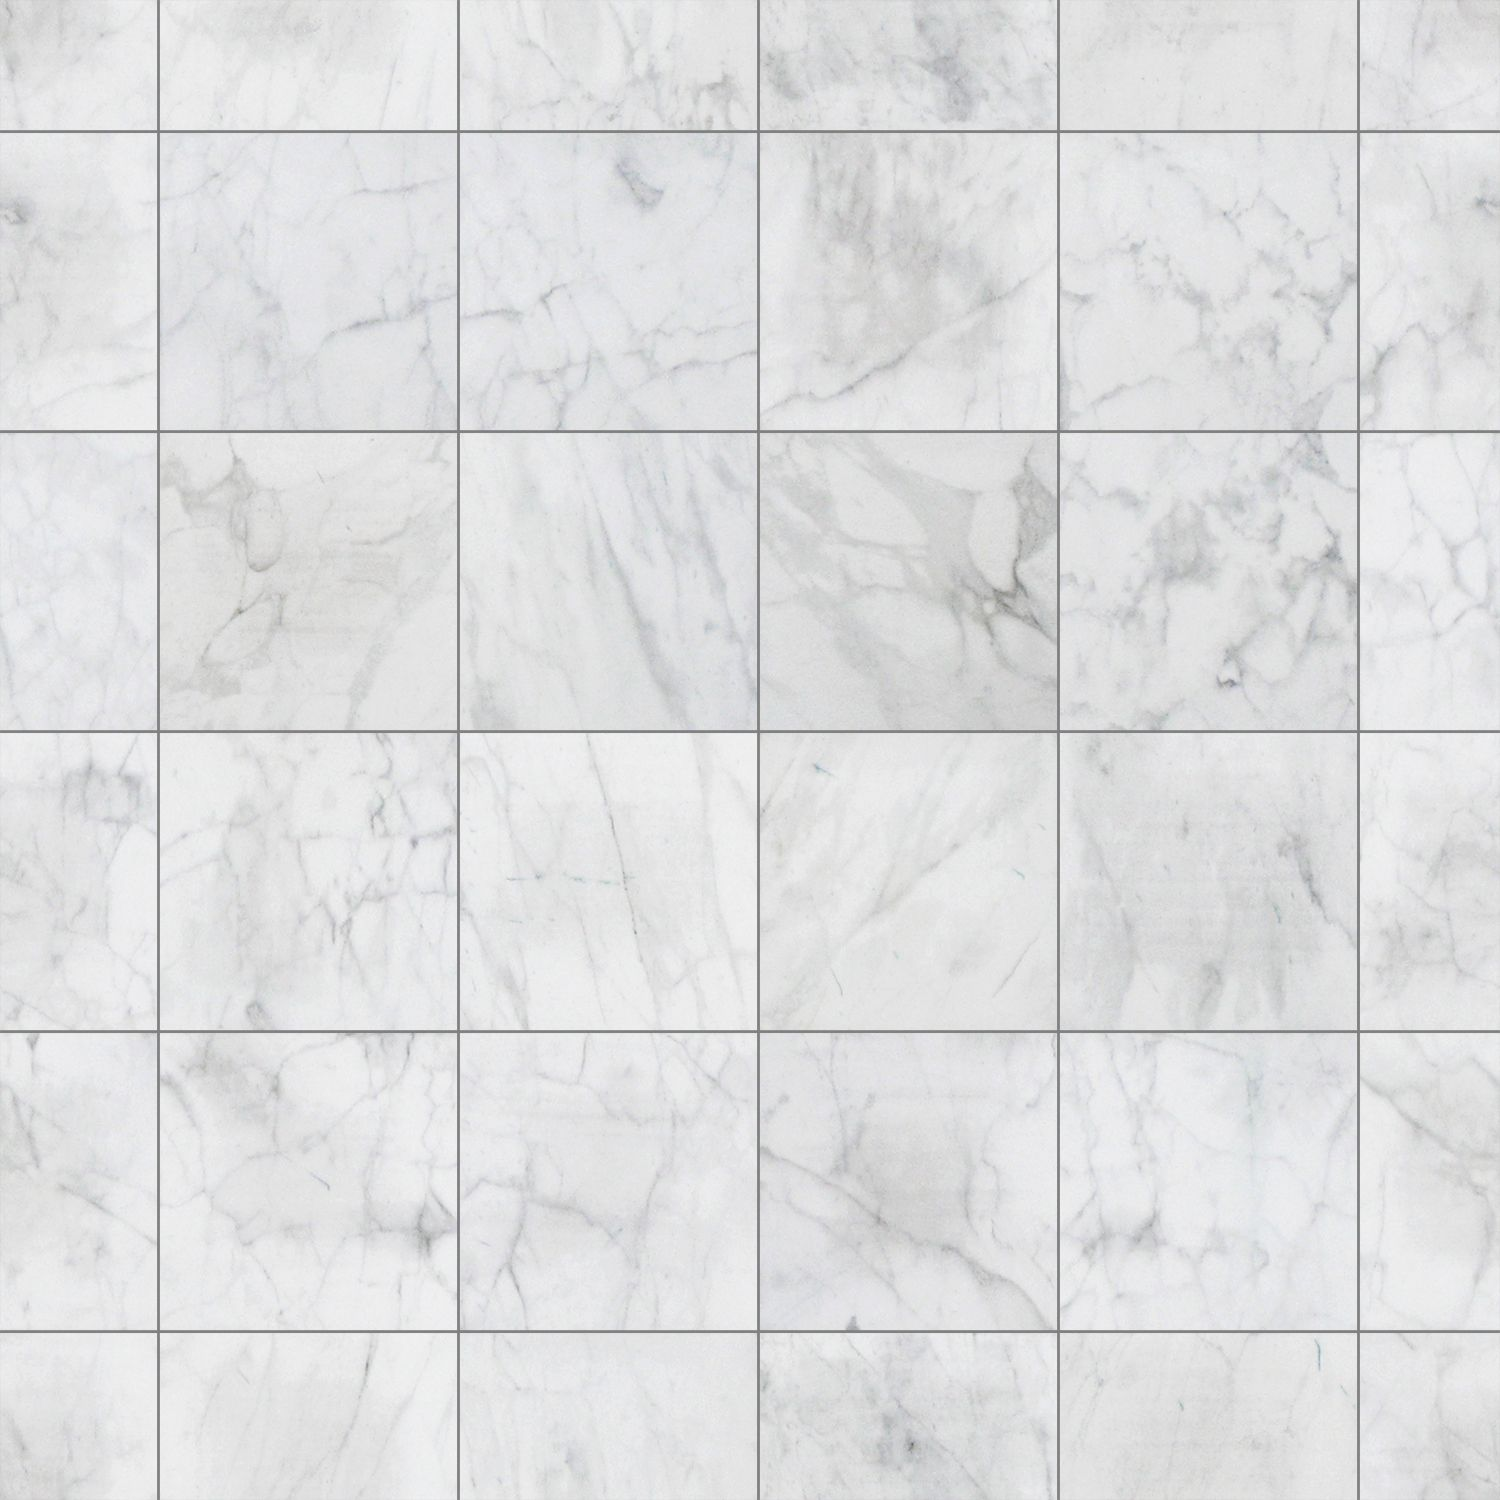 White Marble Texture Background Download Photo White Marble Texture Backg